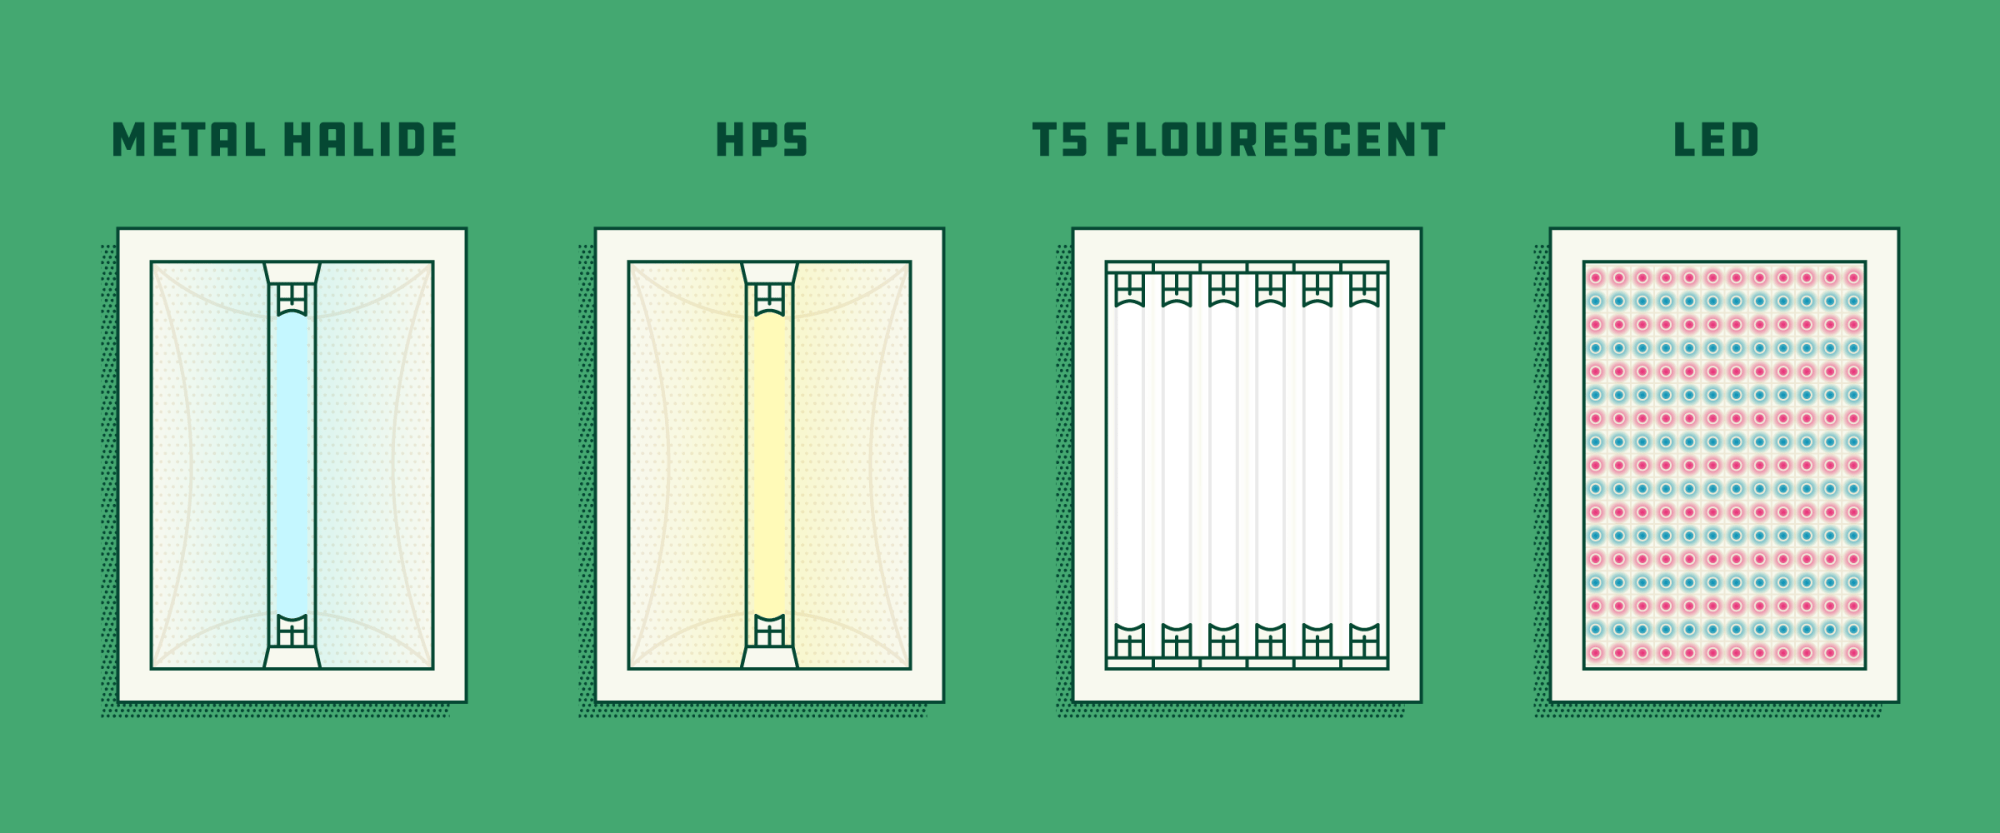 hight resolution of illustration of the main types of grow lights for indoor growing source